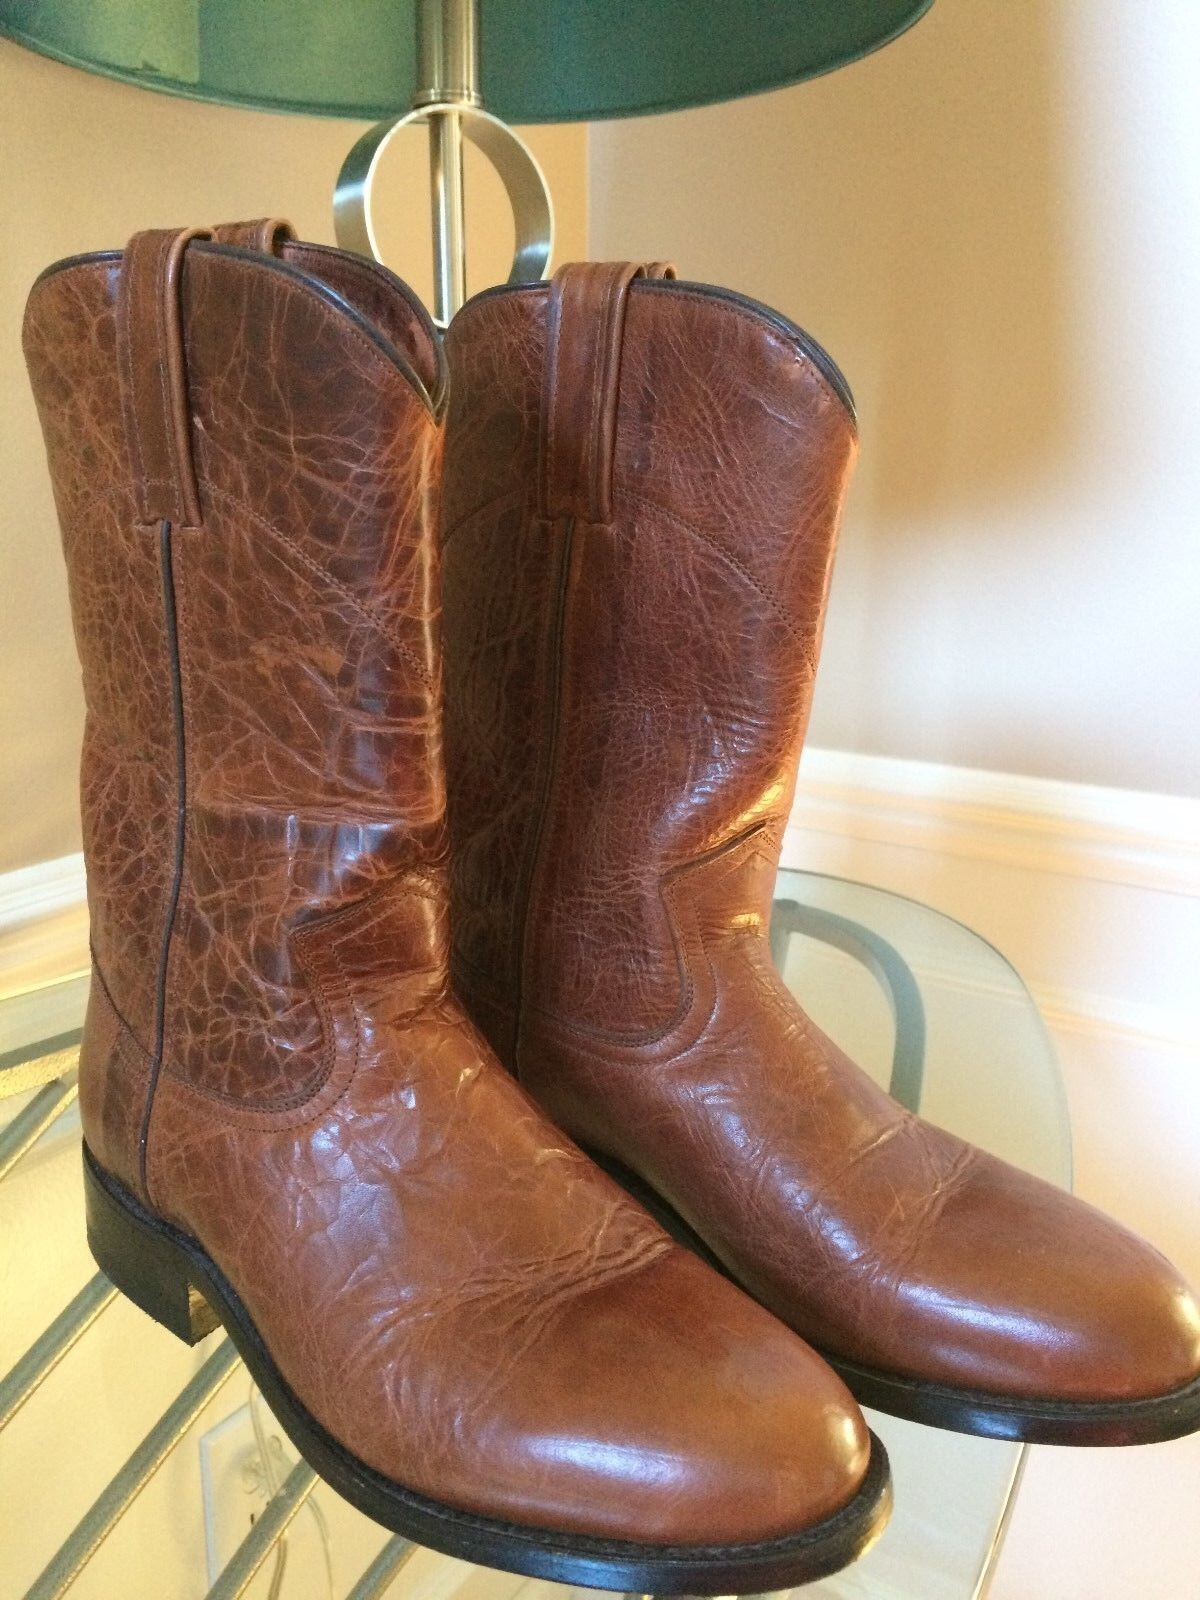 CABORCA Western Rodeo Roper Boots Distressed Brown Leather MEX-25 US-M 7 W 8.5